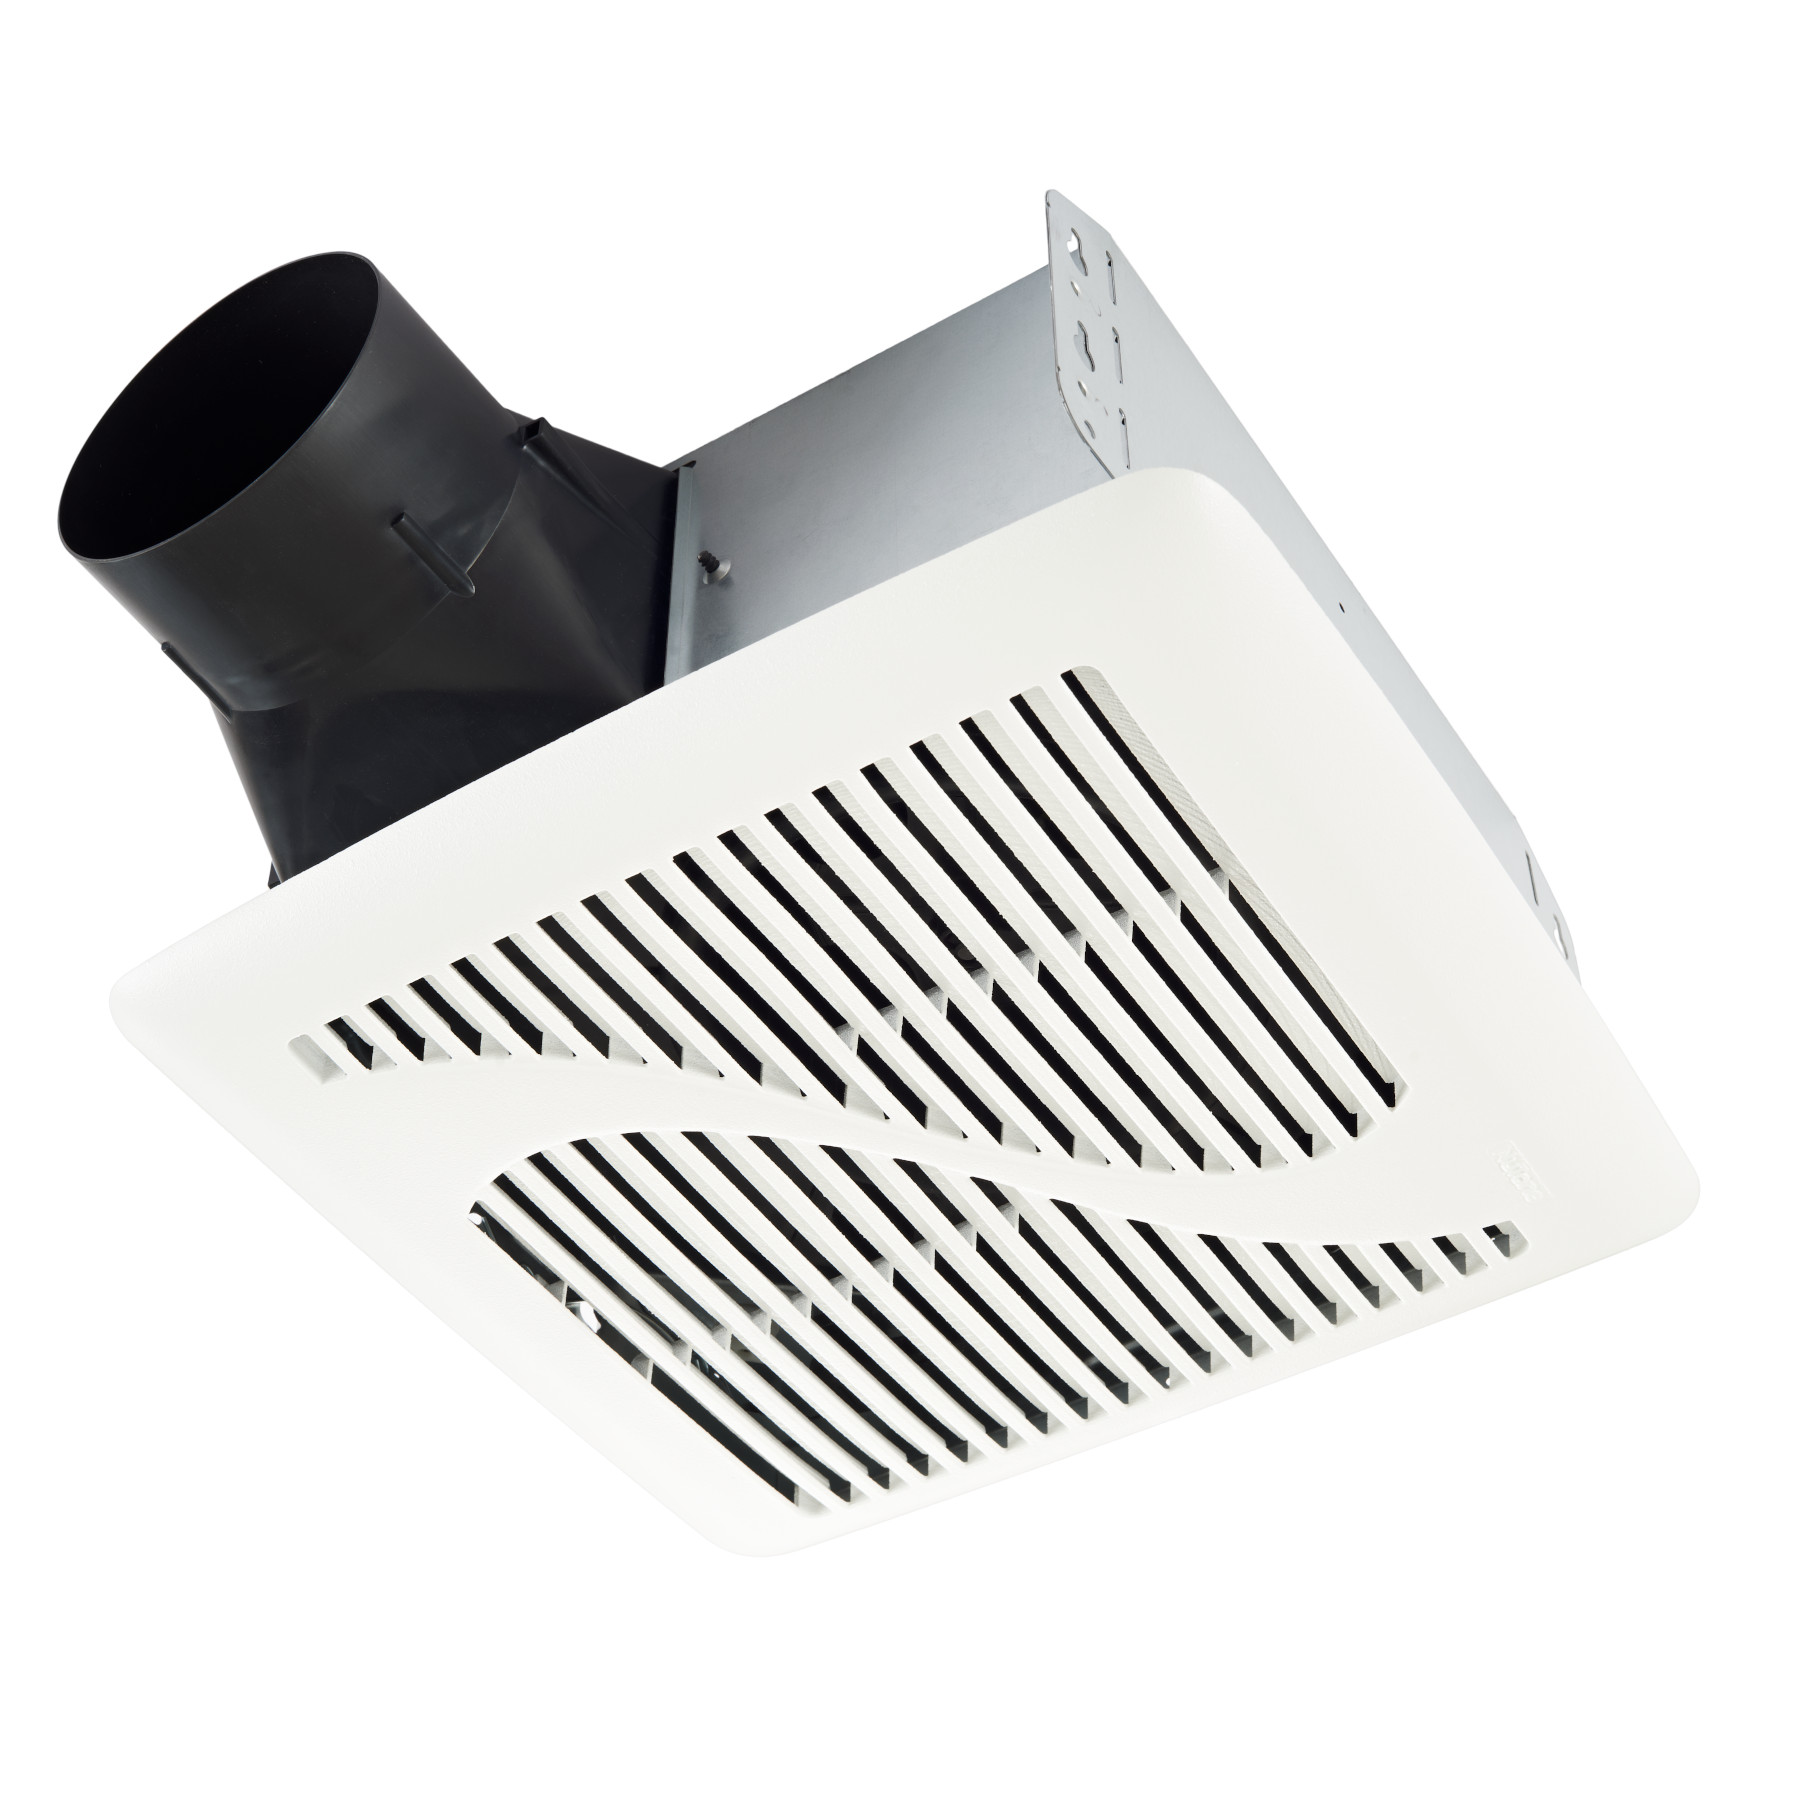 Roomside Series 110 CFM Ceiling Roomside Installation Bathroom Exhaust Fan, ENERGY STAR*